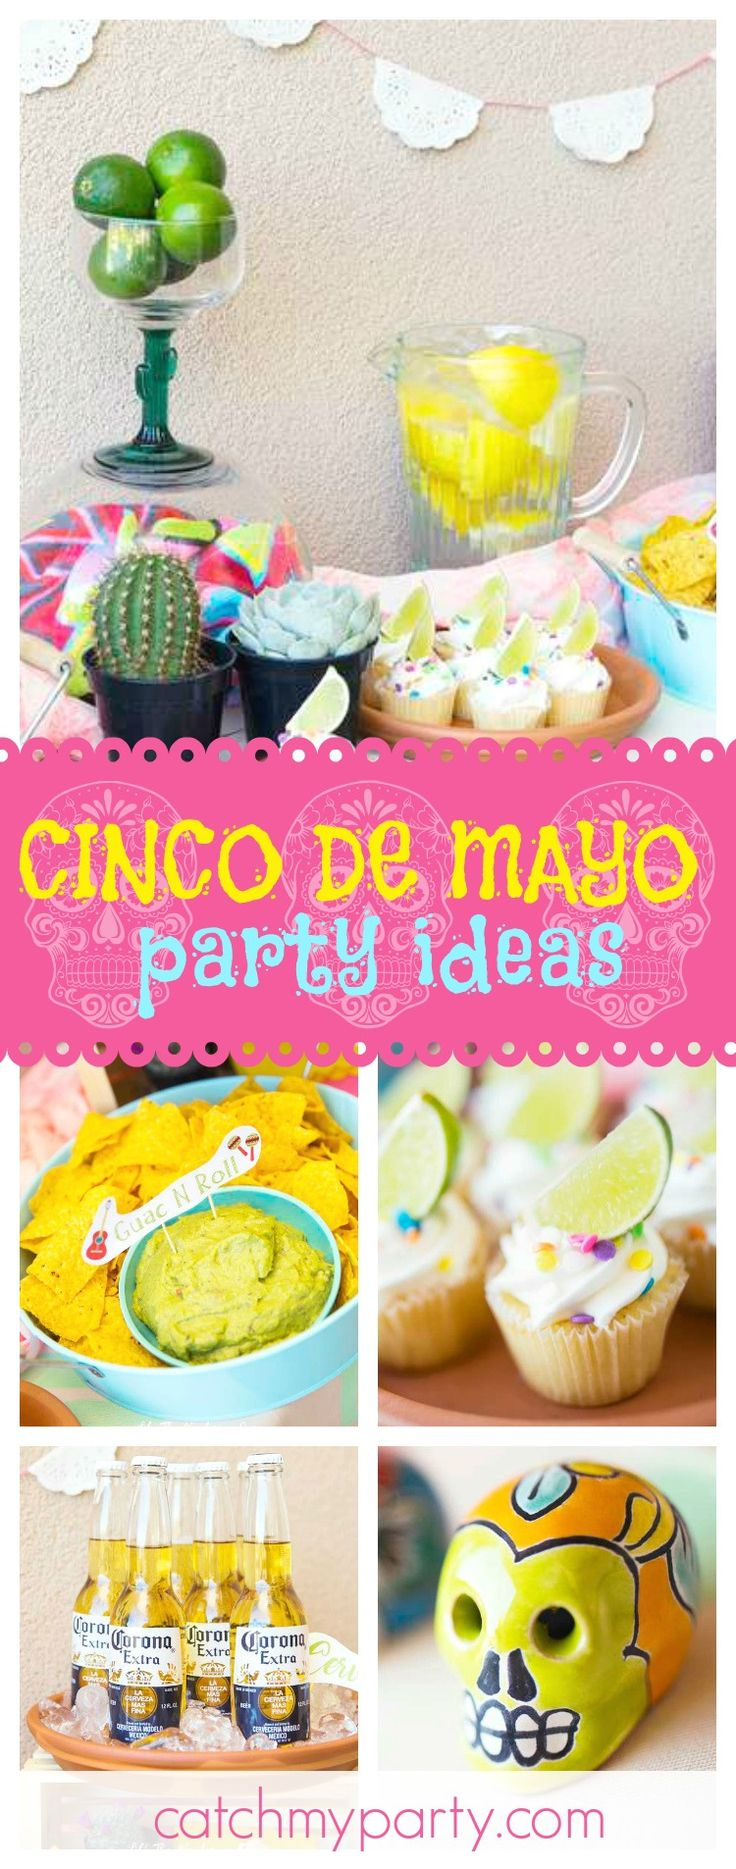 Count down to Cinco de Mayo with a fun party like this one!! The lime cupcakes are awesome!! See more party ideas and share yours at CatchMyParty.com